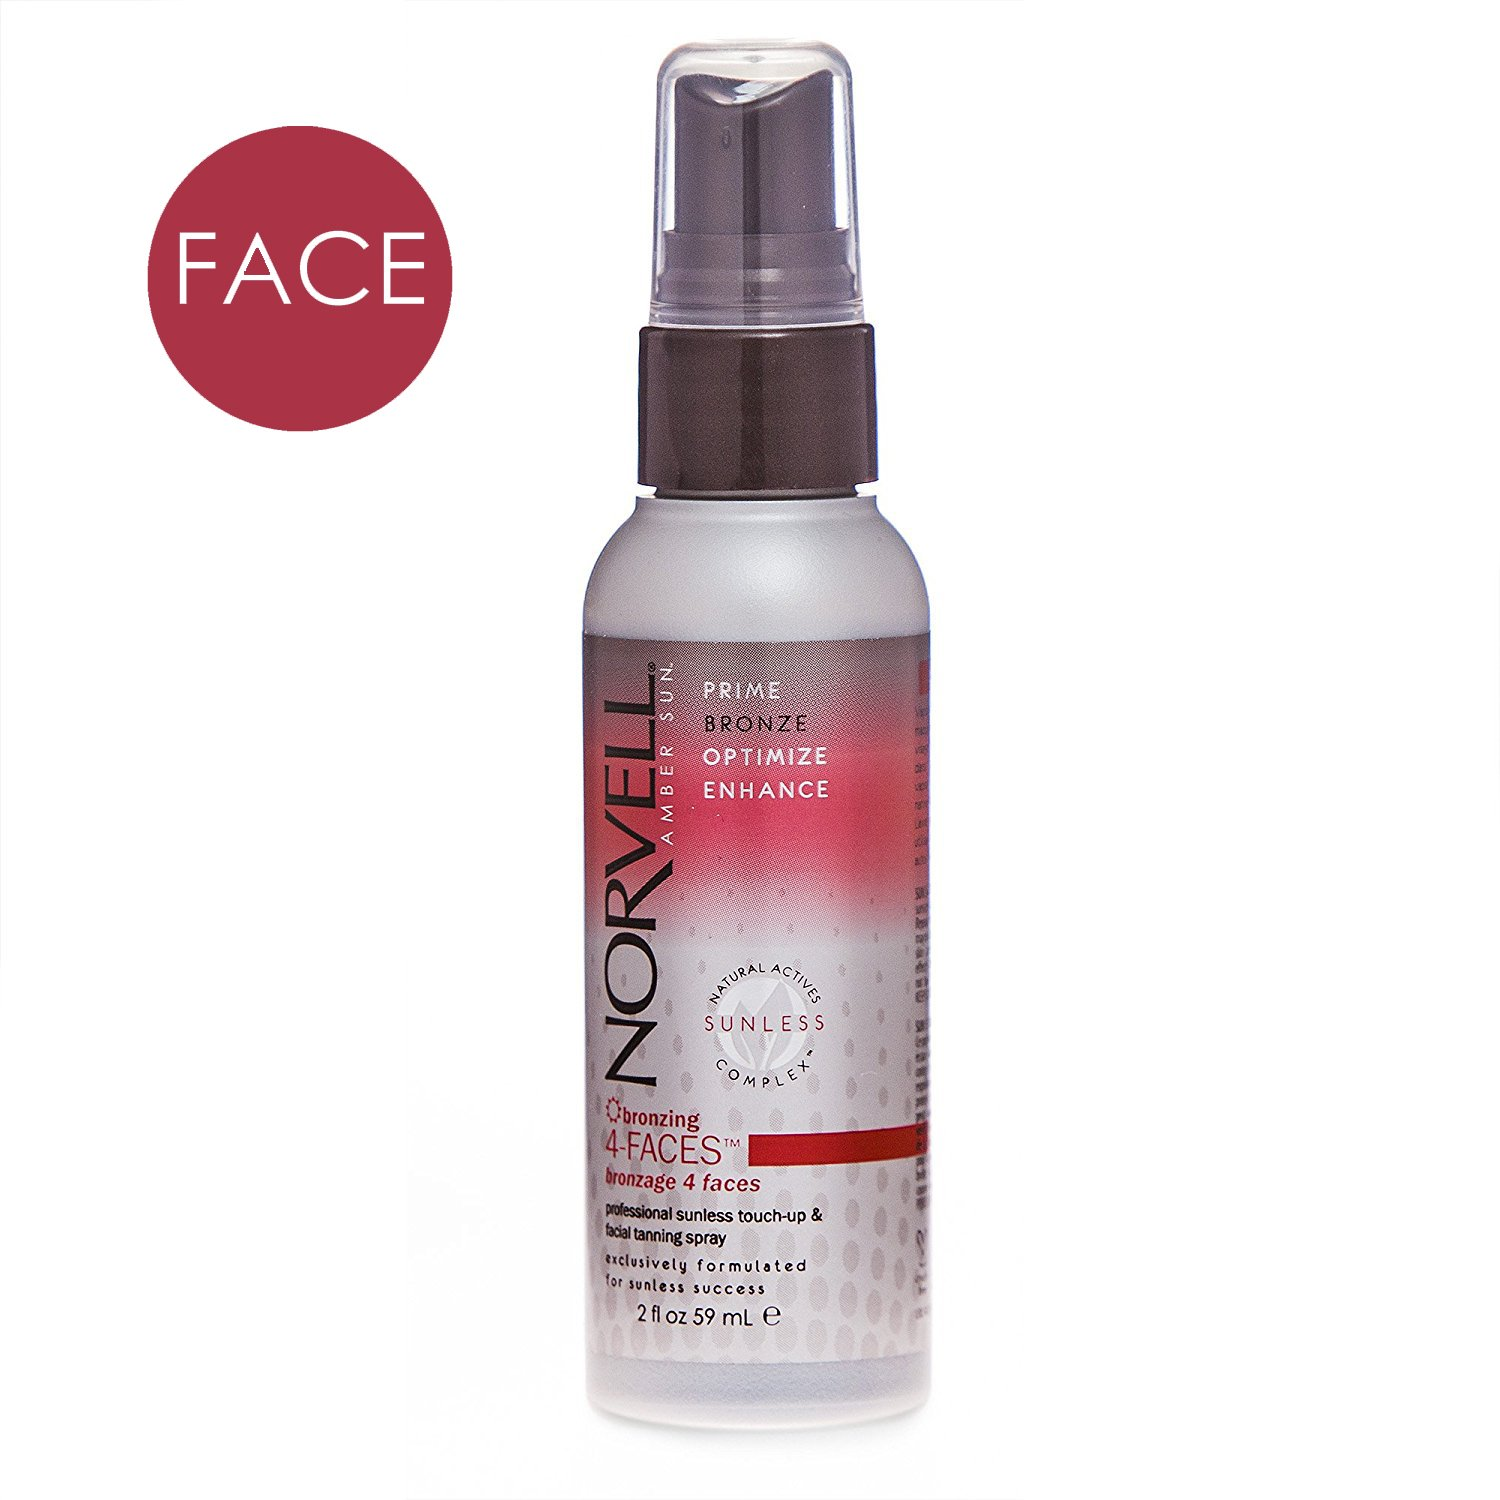 Norvell Bronzing 4-Faces Sunless Facial Self-Tanning